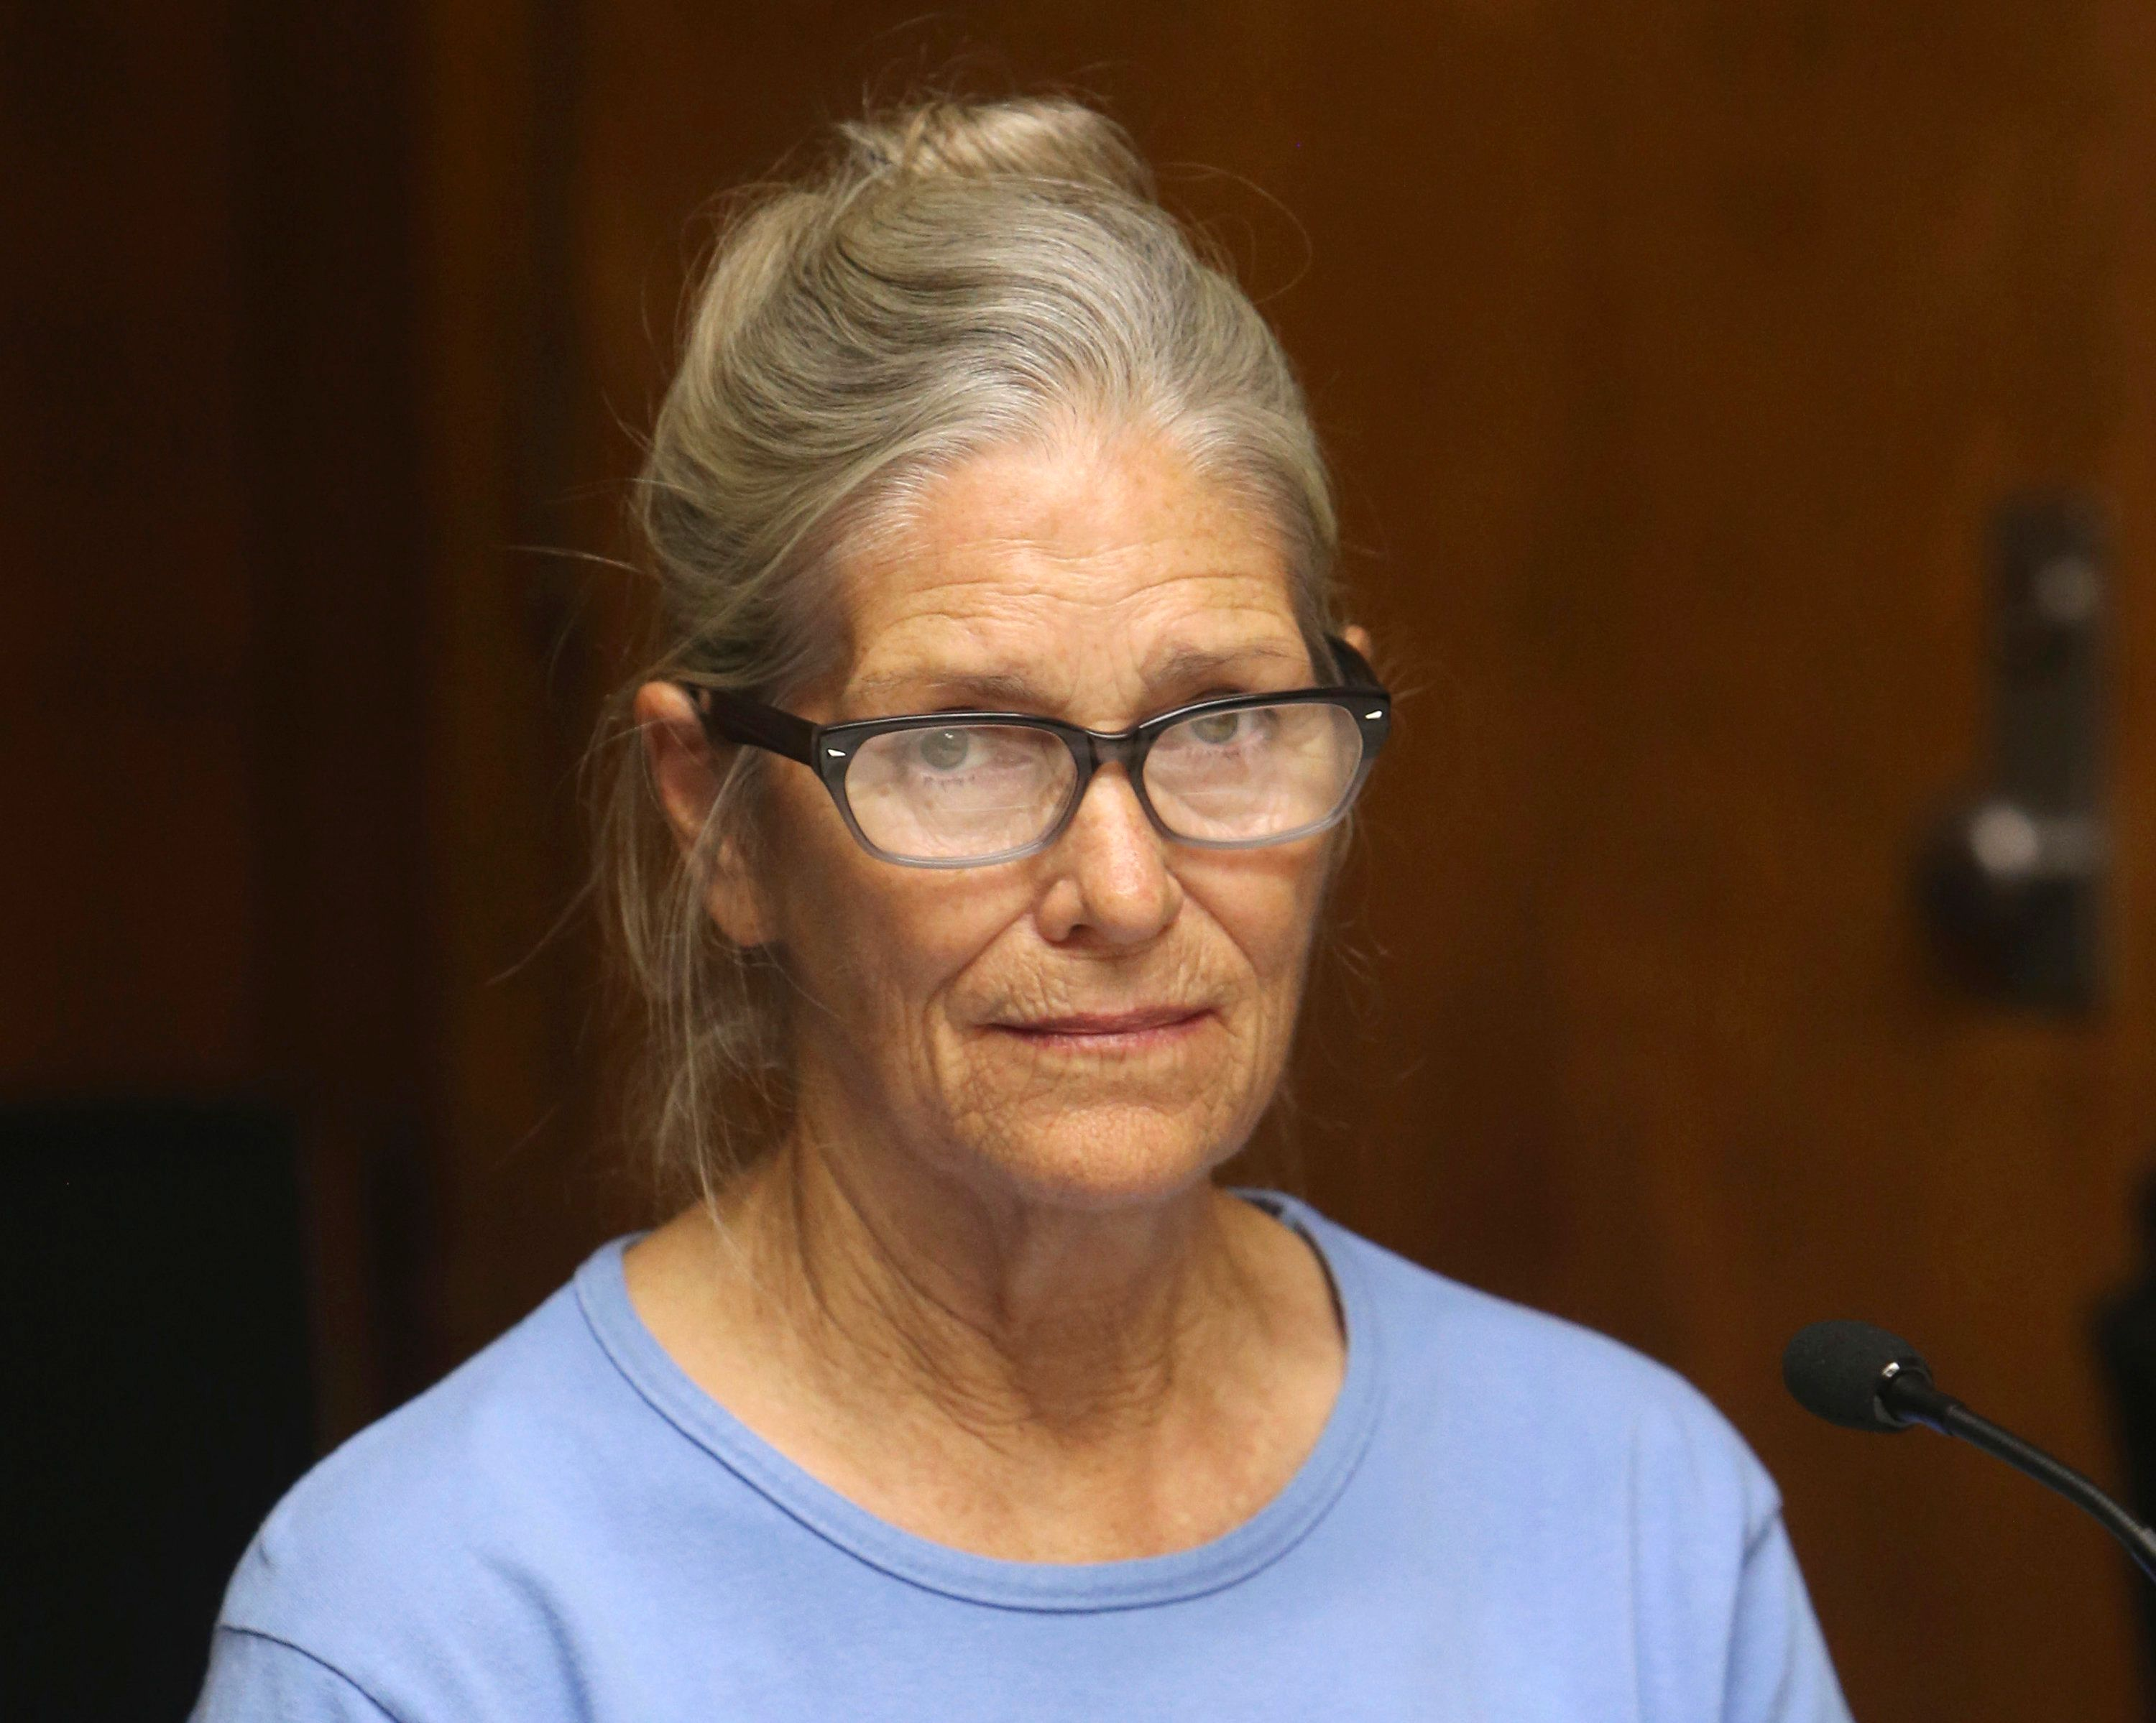 Leslie Van Houten was 19 when she and others in Charles Manson's cult committed numerous murders in 1969.